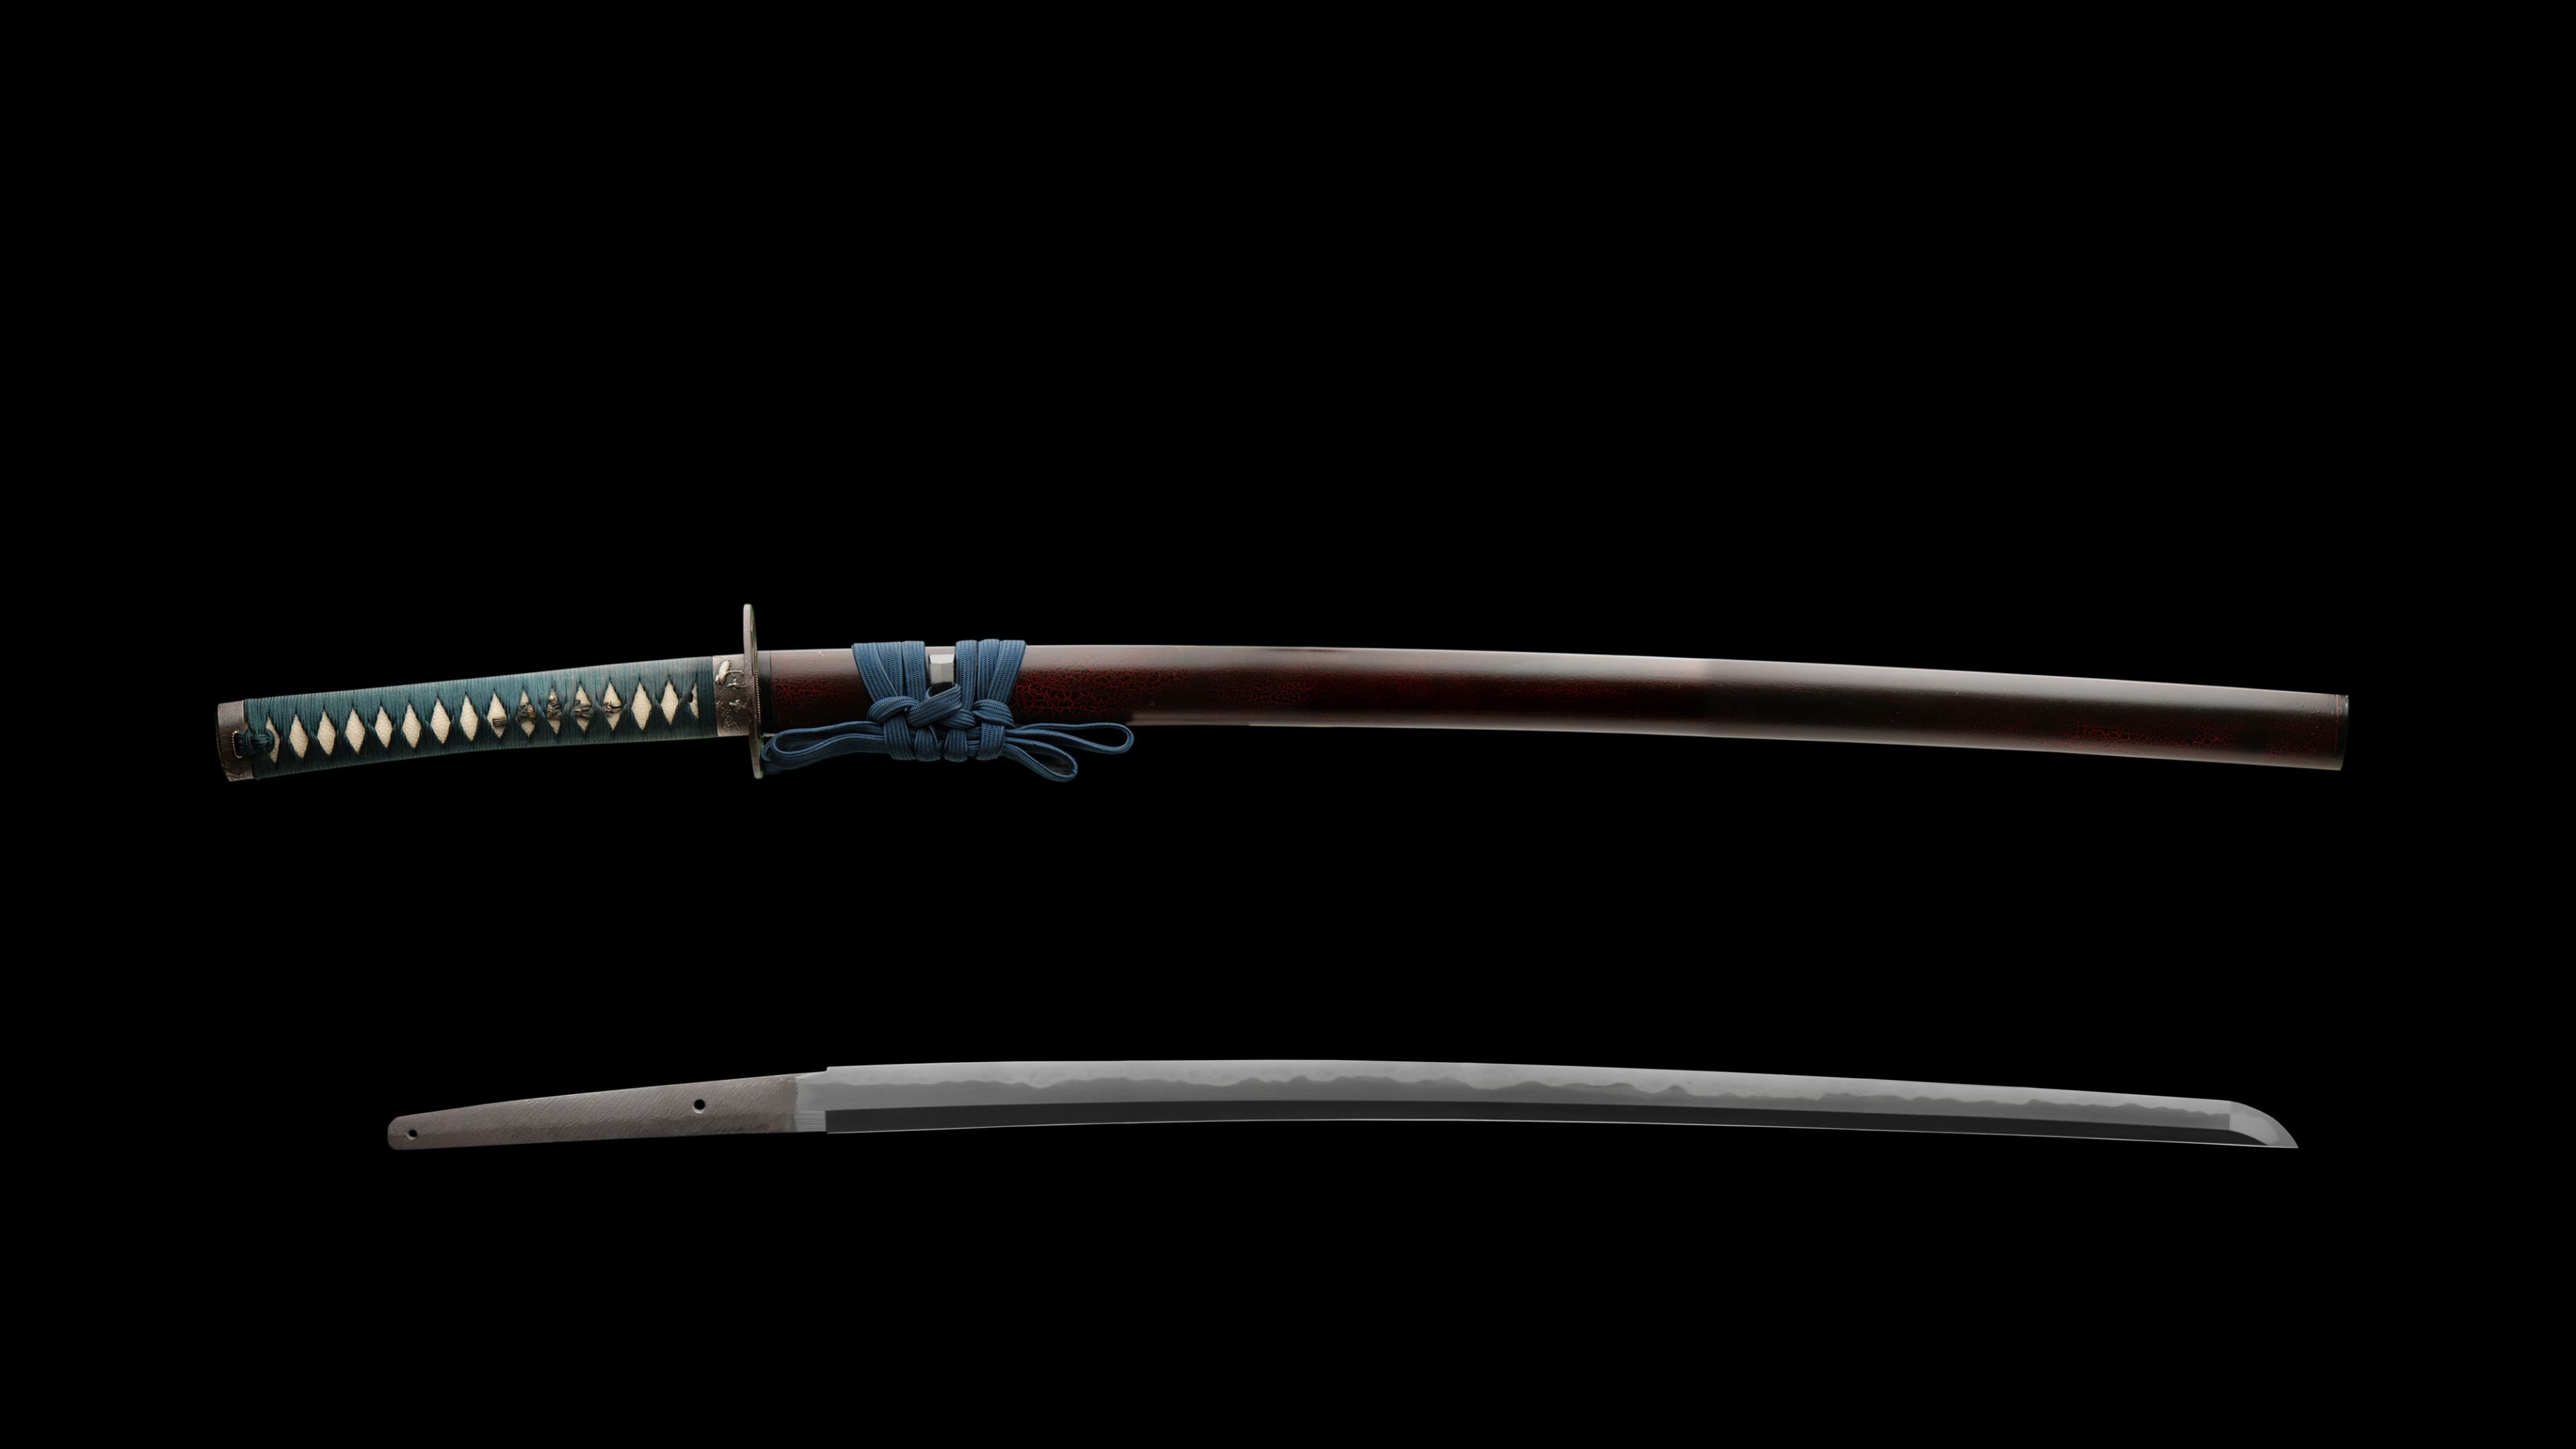 samurai katana wallpaper hd - photo #17